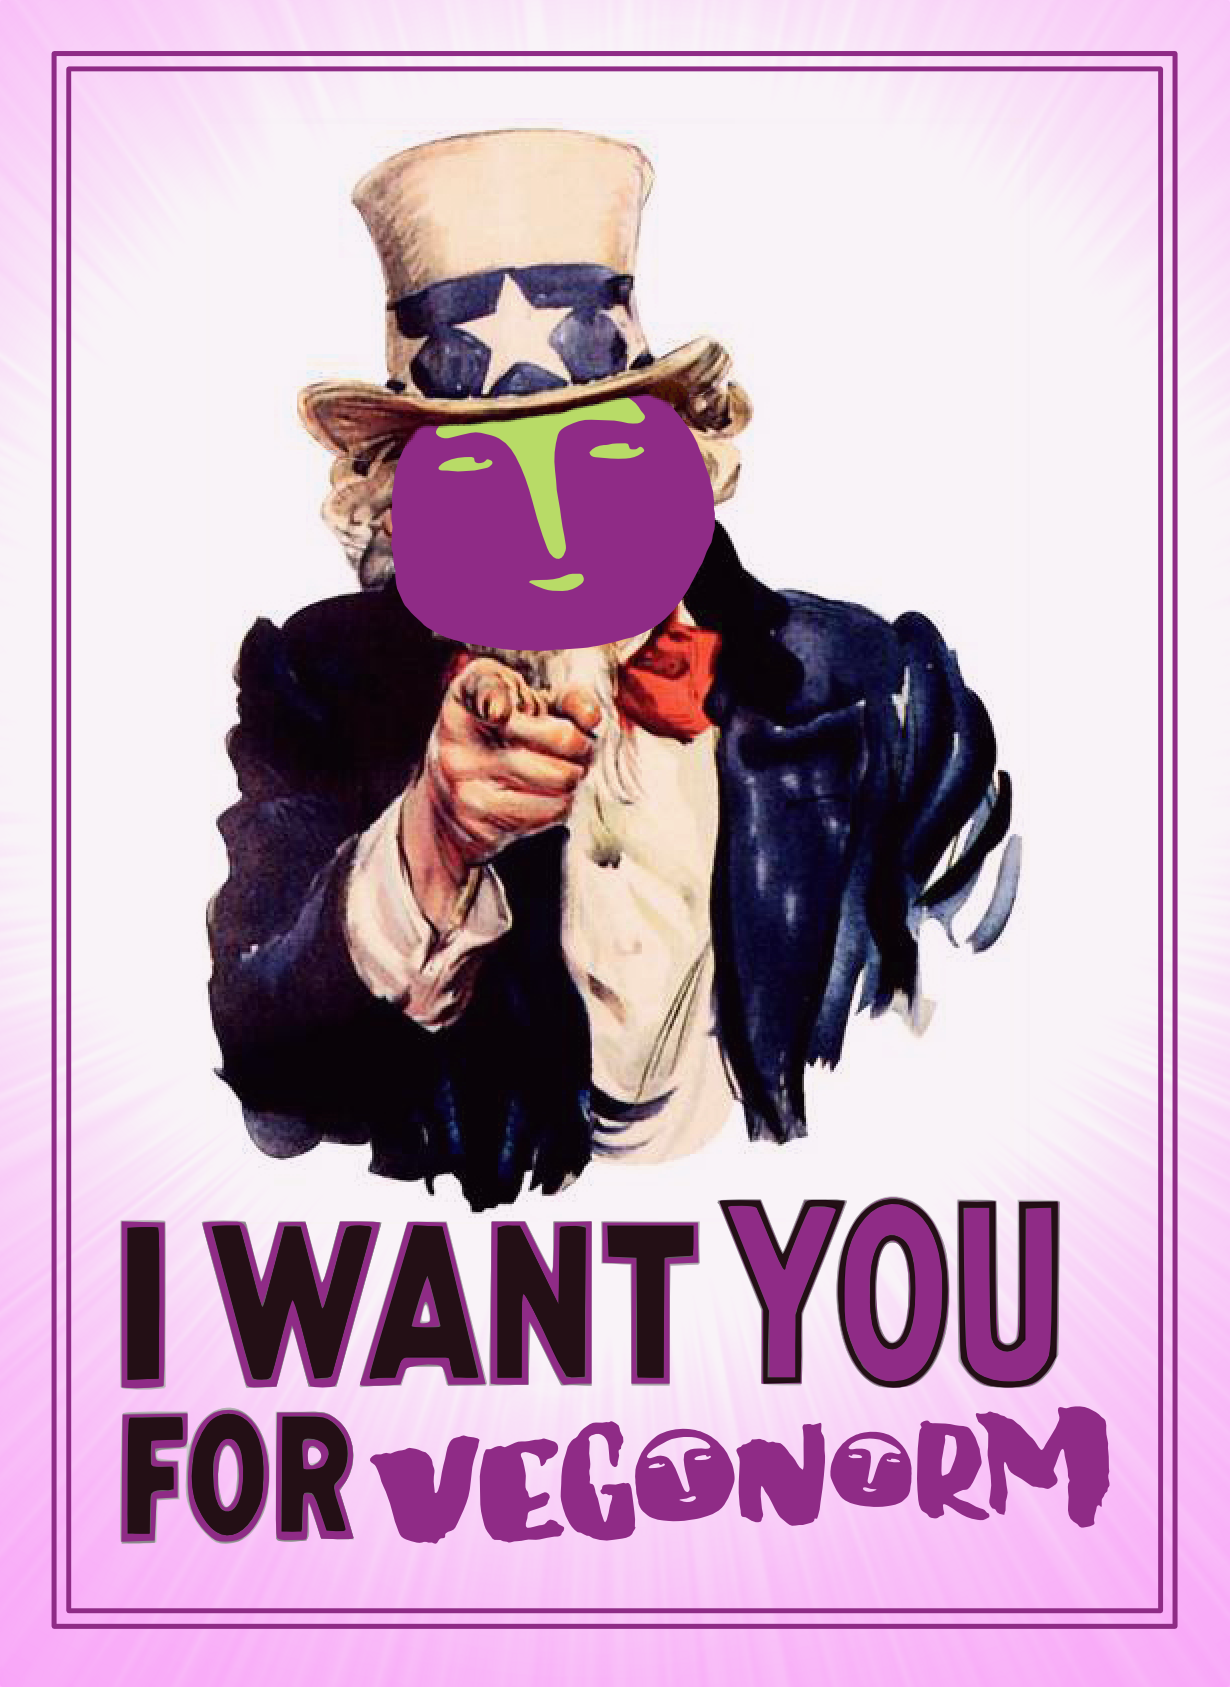 Vegomårran wants you